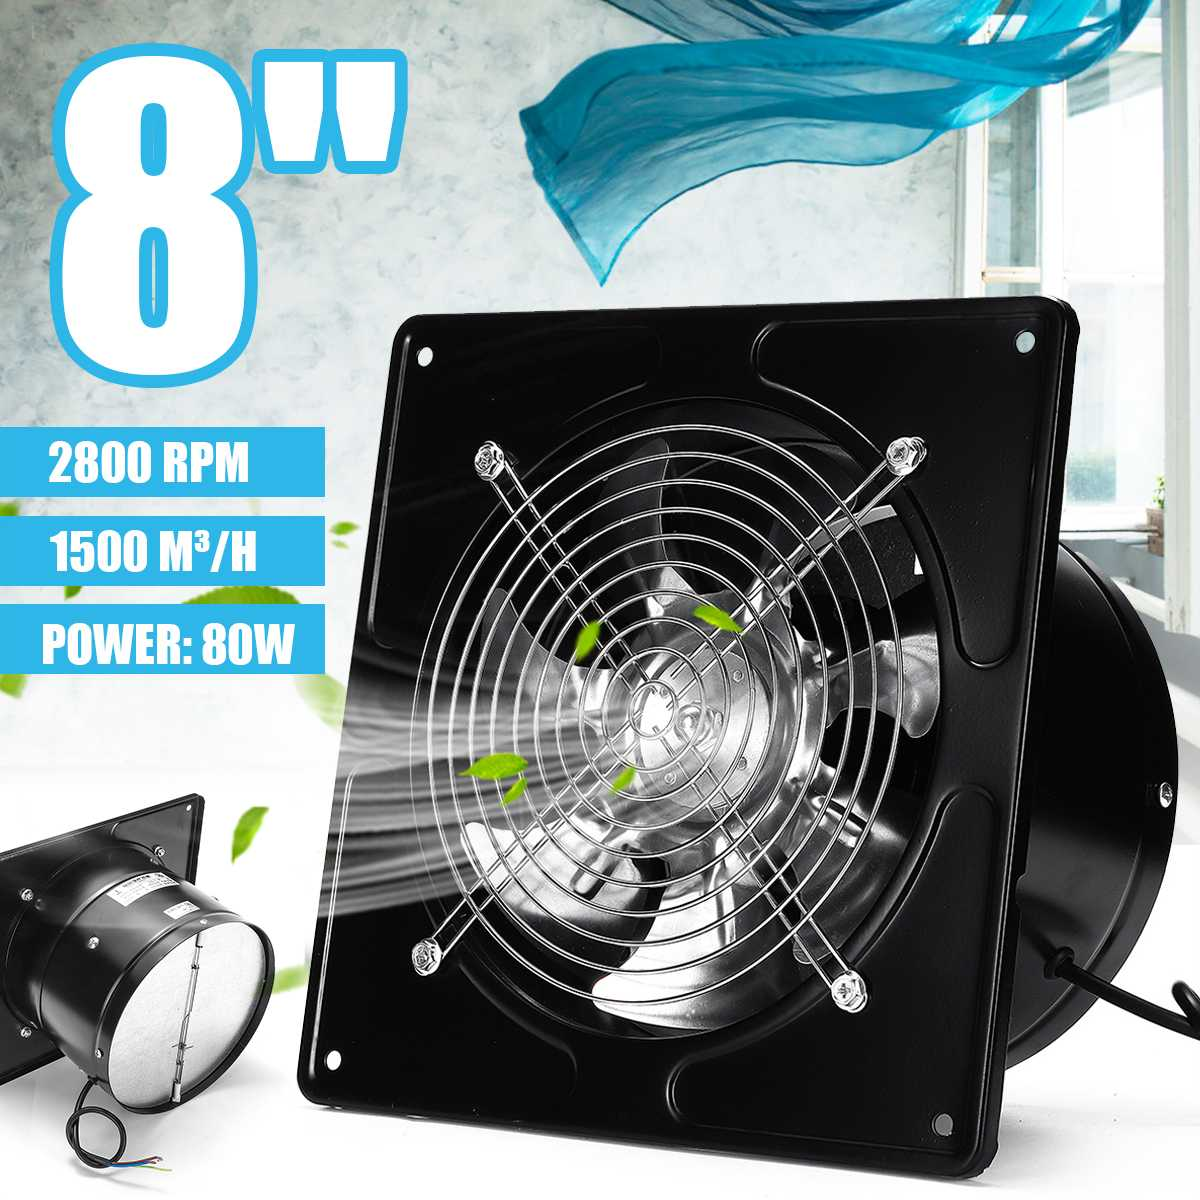 8 Inch 220V 2800rpm 80W Extractor Fan Silent Wall Extractor Industrial Ventilation Fan Toilet Bathroom Kitchen Window Air Blower